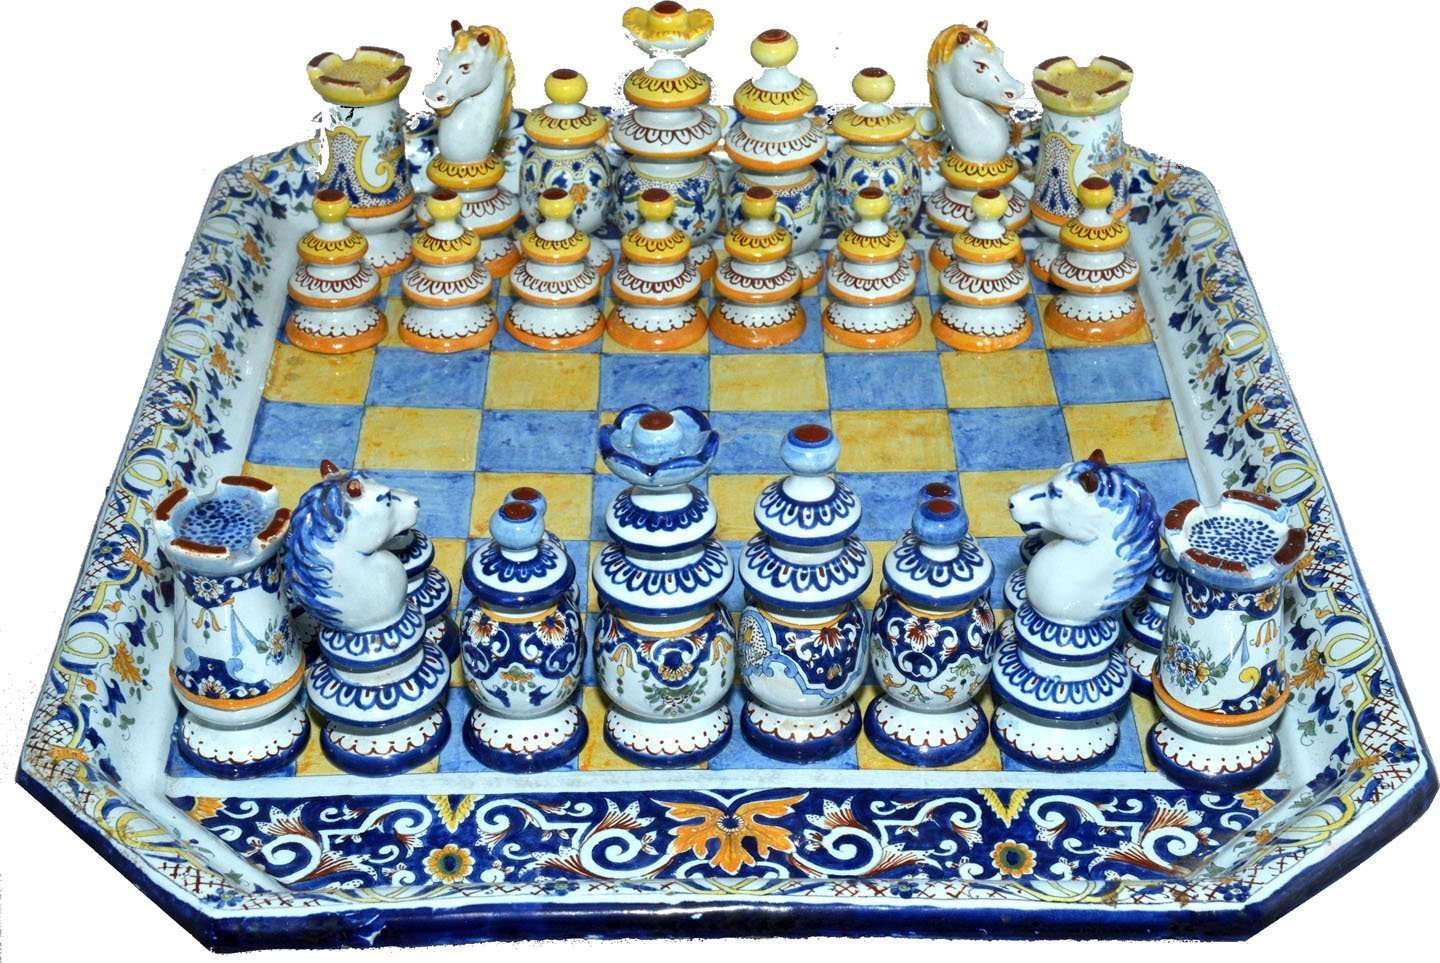 Antique chess set french faience - Collectible chess sets ...